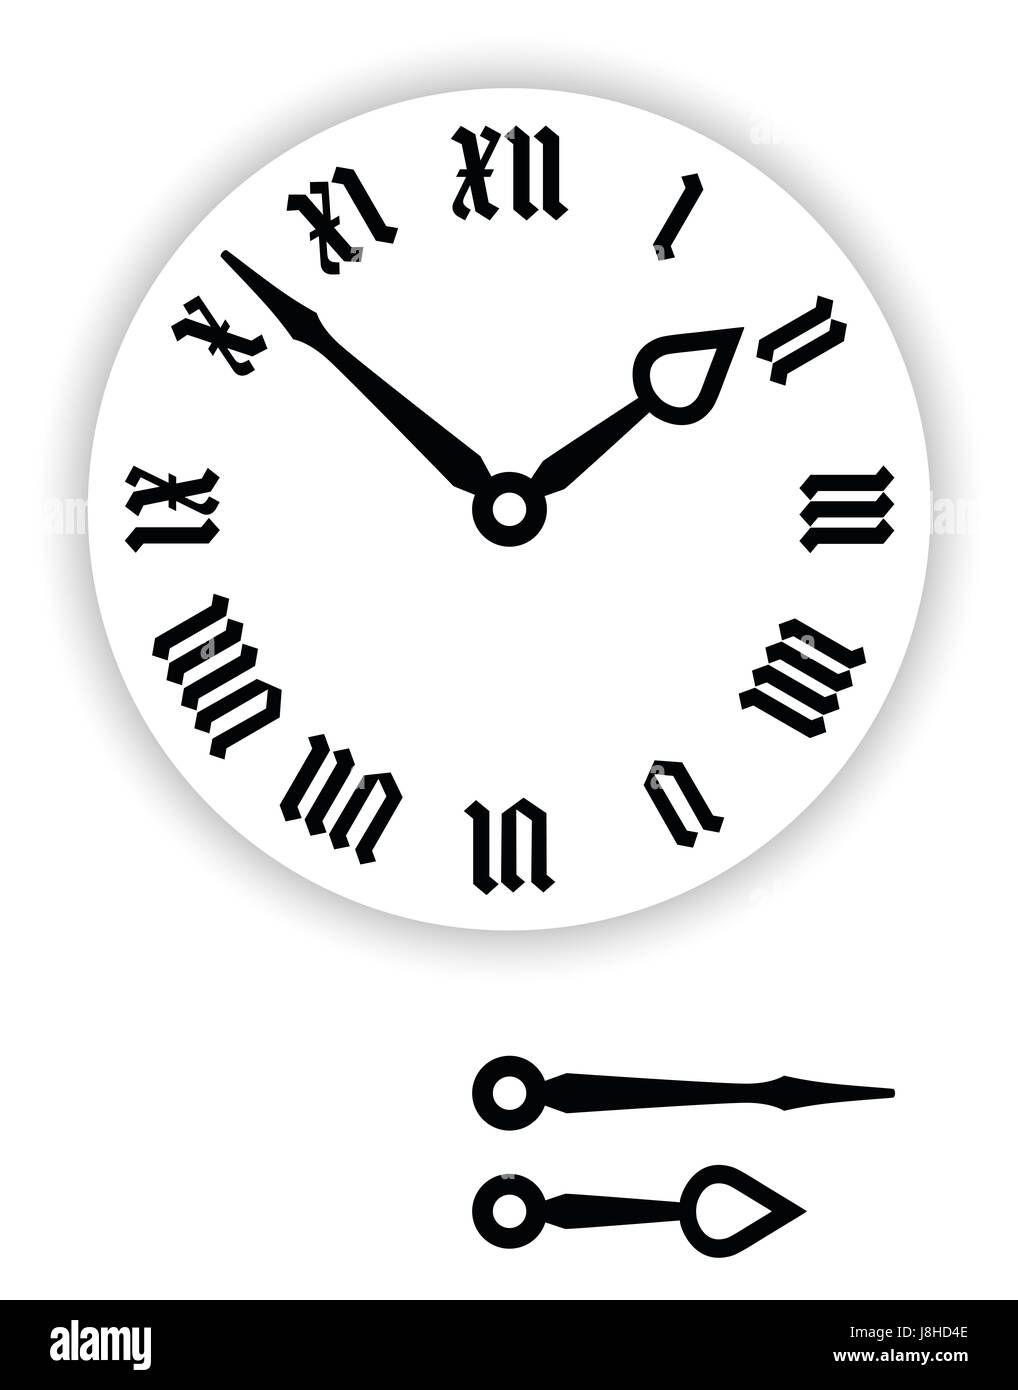 worksheet Analog Clock Face fraktur roman numerals clock face part of analog with black pointers dial blackletter also gothic minuscu